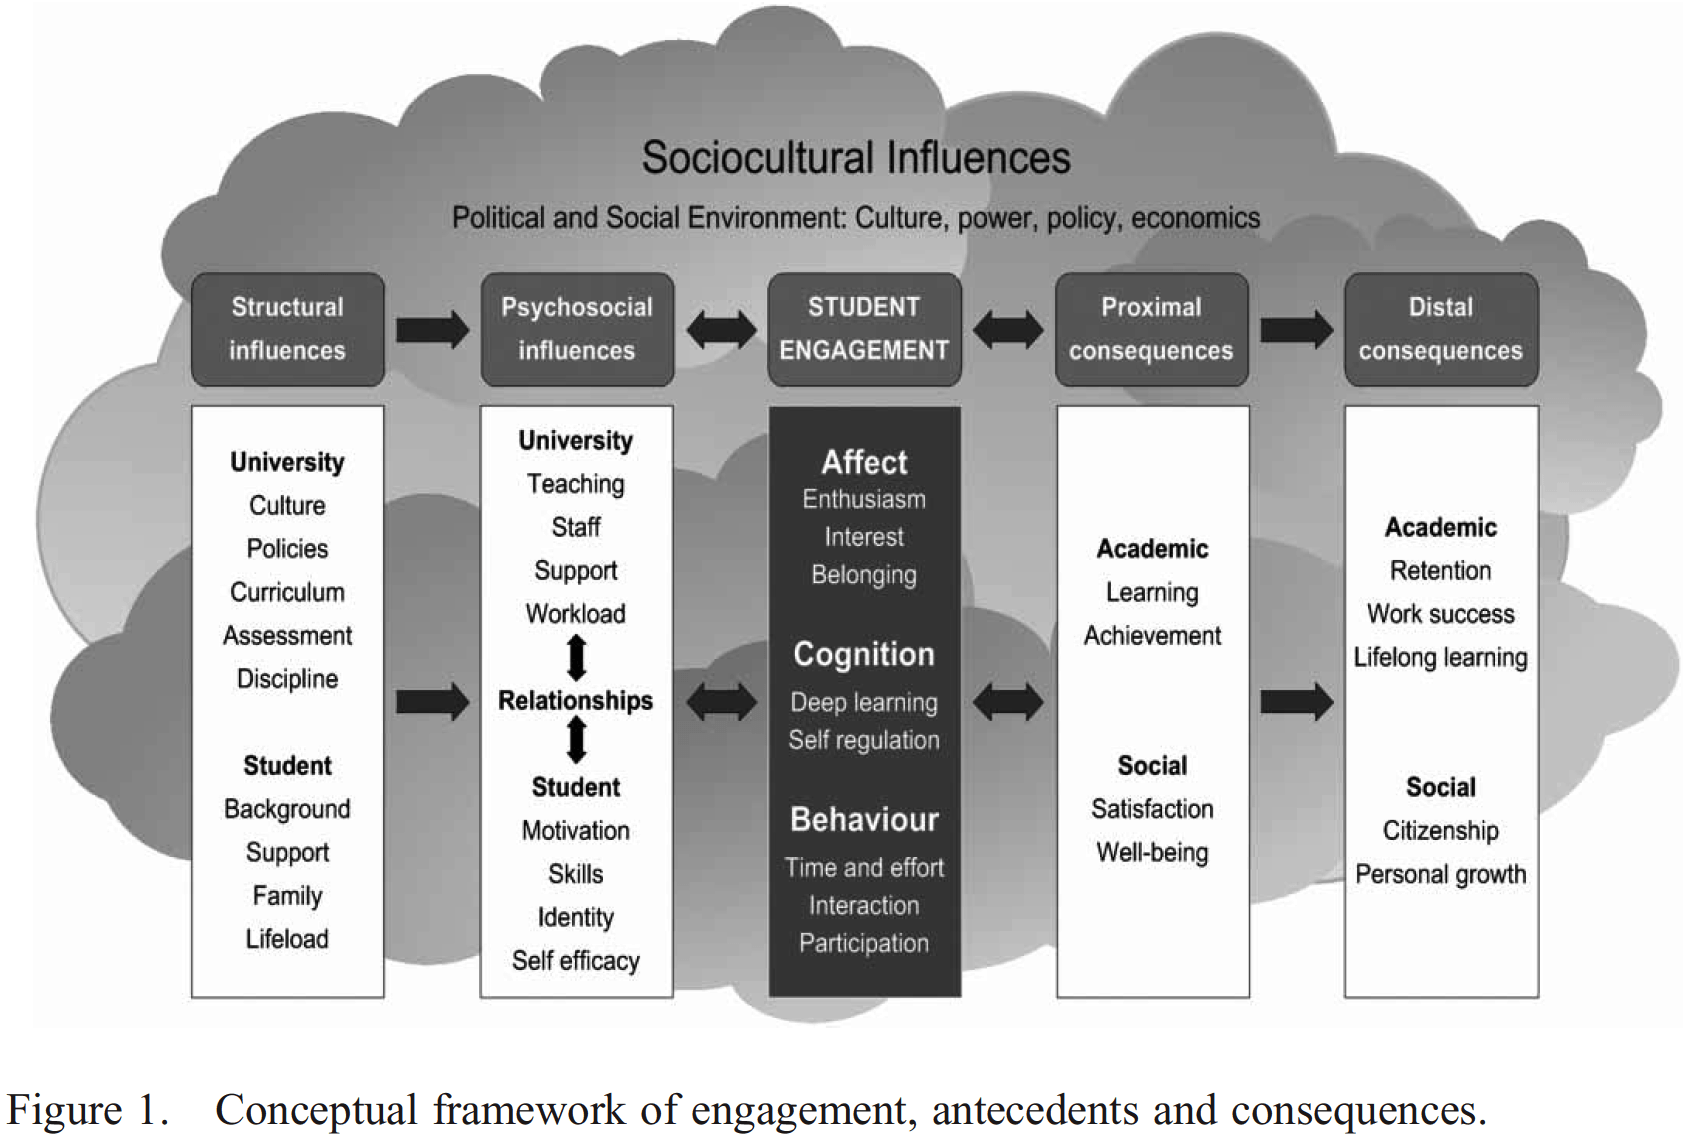 Kahu, E.R (2013). Framing student engagement in higher education. Studies in Higher Education, 38 (5), 758-773.